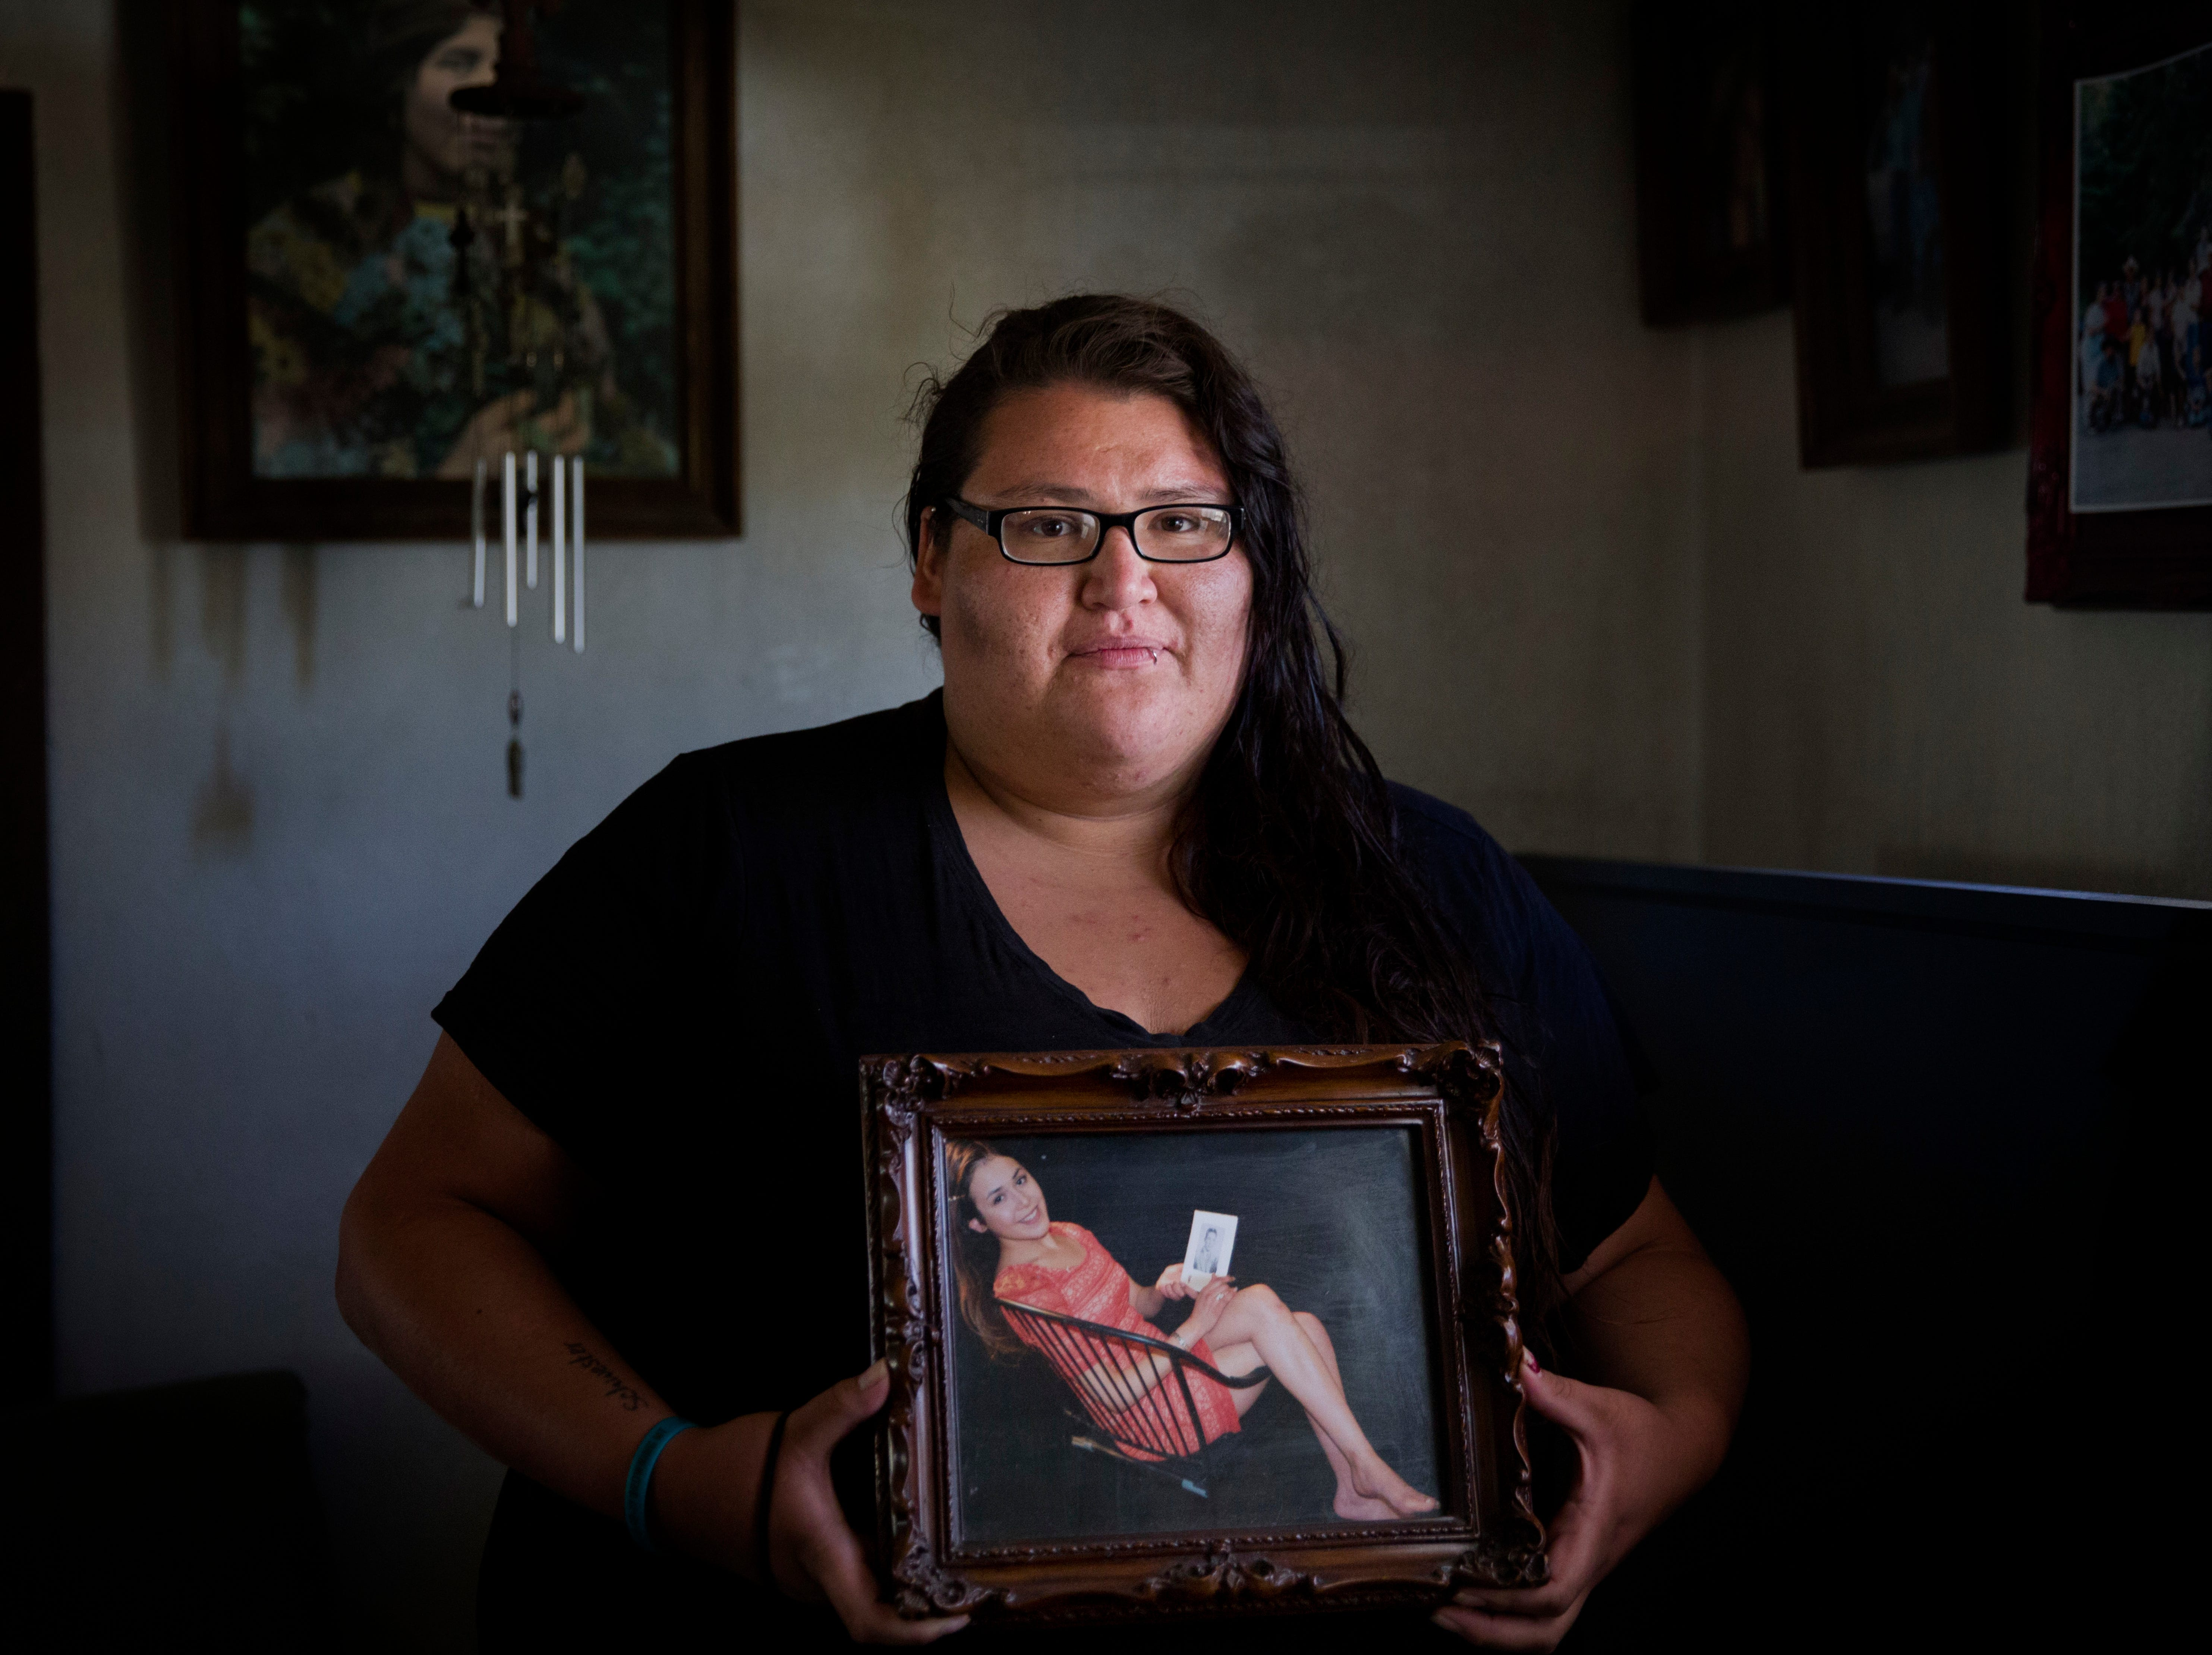 "In this July 13, 2018, file photo, Kimberly Loring holds a photo of her sister, Ashley HeavyRunner Loring, who went missing on the Blackfeet Indian Reservation as she stands in her grandmother's home in Browning, Mont. Loring, the sister of a missing Blackfeet woman in Montana is expressing frustration over police's initial response to her loved one's disappearance, telling U.S. senators in prepared testimony Wednesday, Dec. 12, 2018, that ""dysfunctional"" investigations into missing persons cases have troubled numerous Native American families."